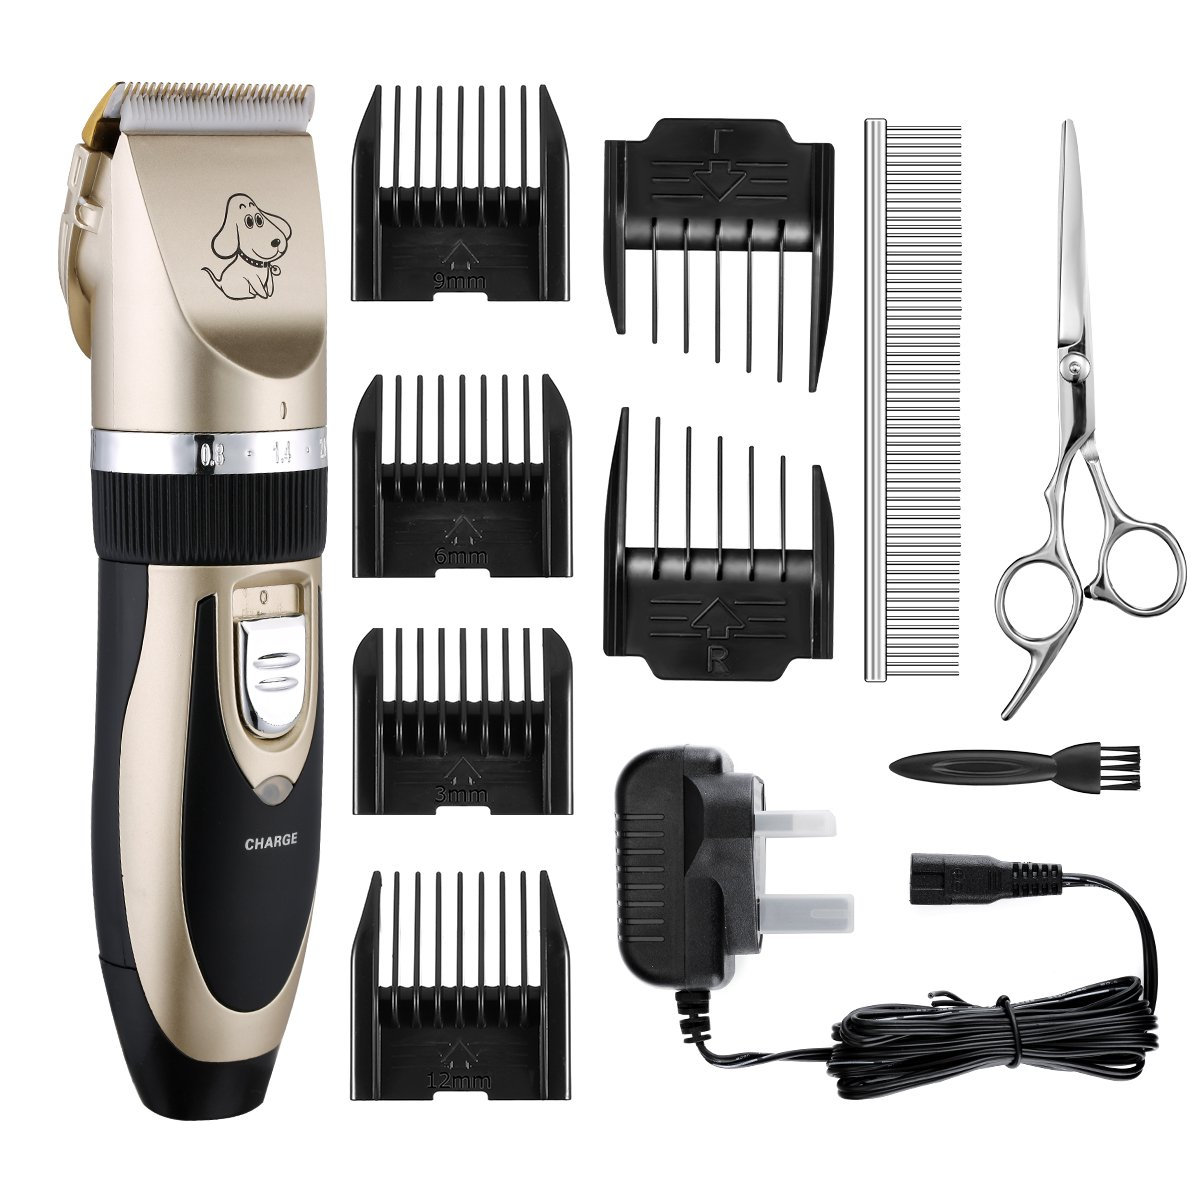 Clippers Cordless TOPOP Rechargeable Pet Grooming Clippers Low Noise Electric Clippers Low Vibration Pet Hair Shaver Pro Ceramic Movable Blade Grooming Trimmer Kit Set Cat Clippers with Metal Comb ,Stainless Steel Scissors, 6 Comb Guides and Cleaning Brus